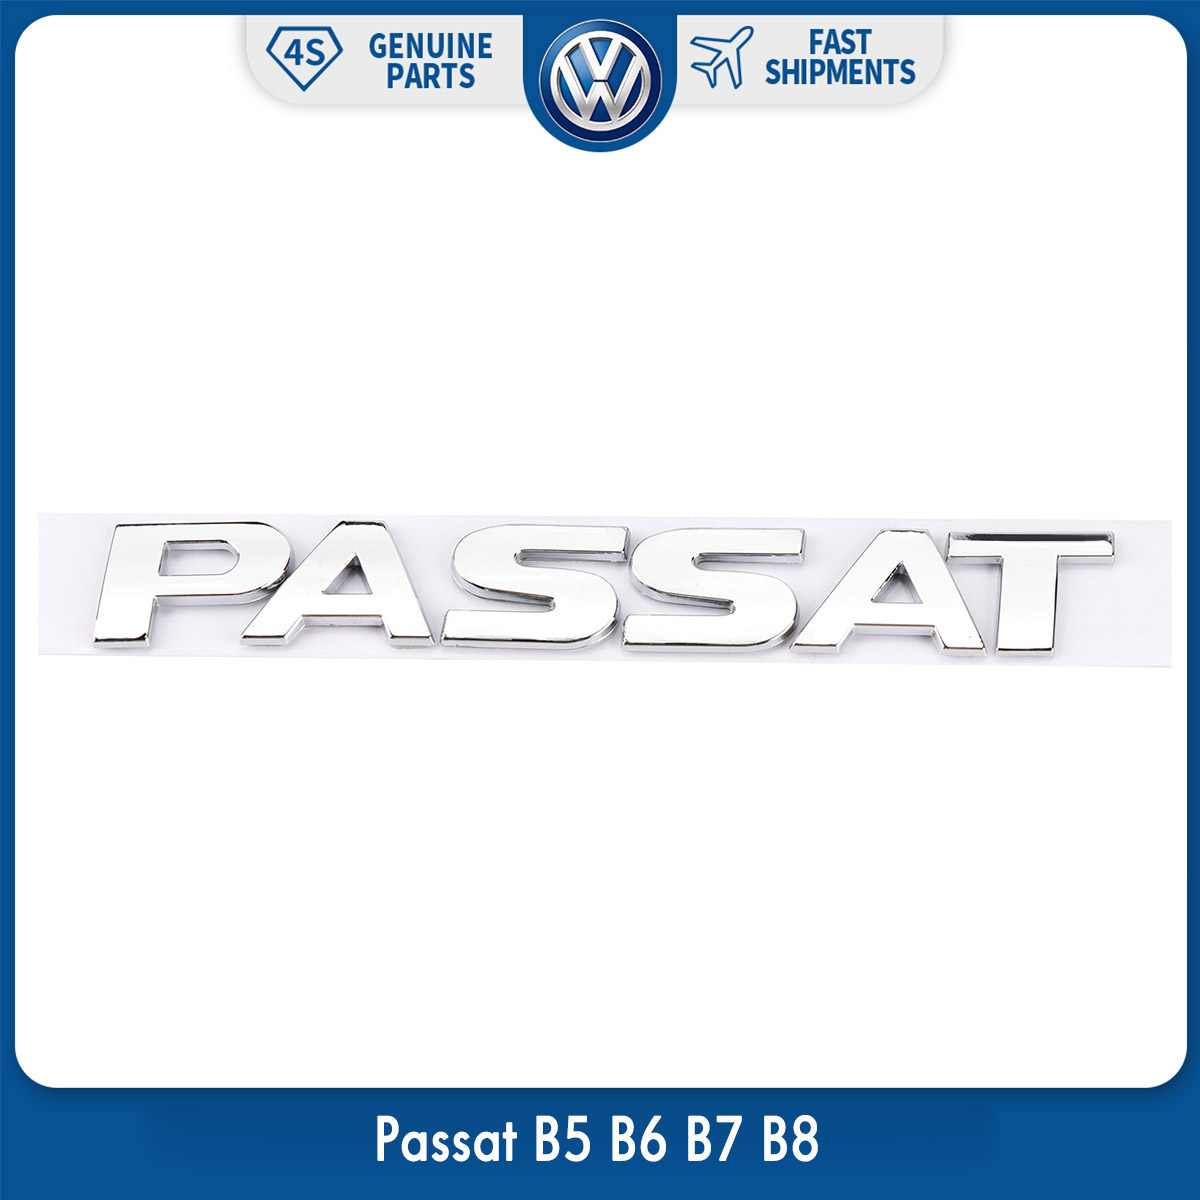 OEM Original Rear Trunk Lid Chrome Silver Emblem Sticker Passat for VW Volkswagen Passat B5 B6 B7 B8